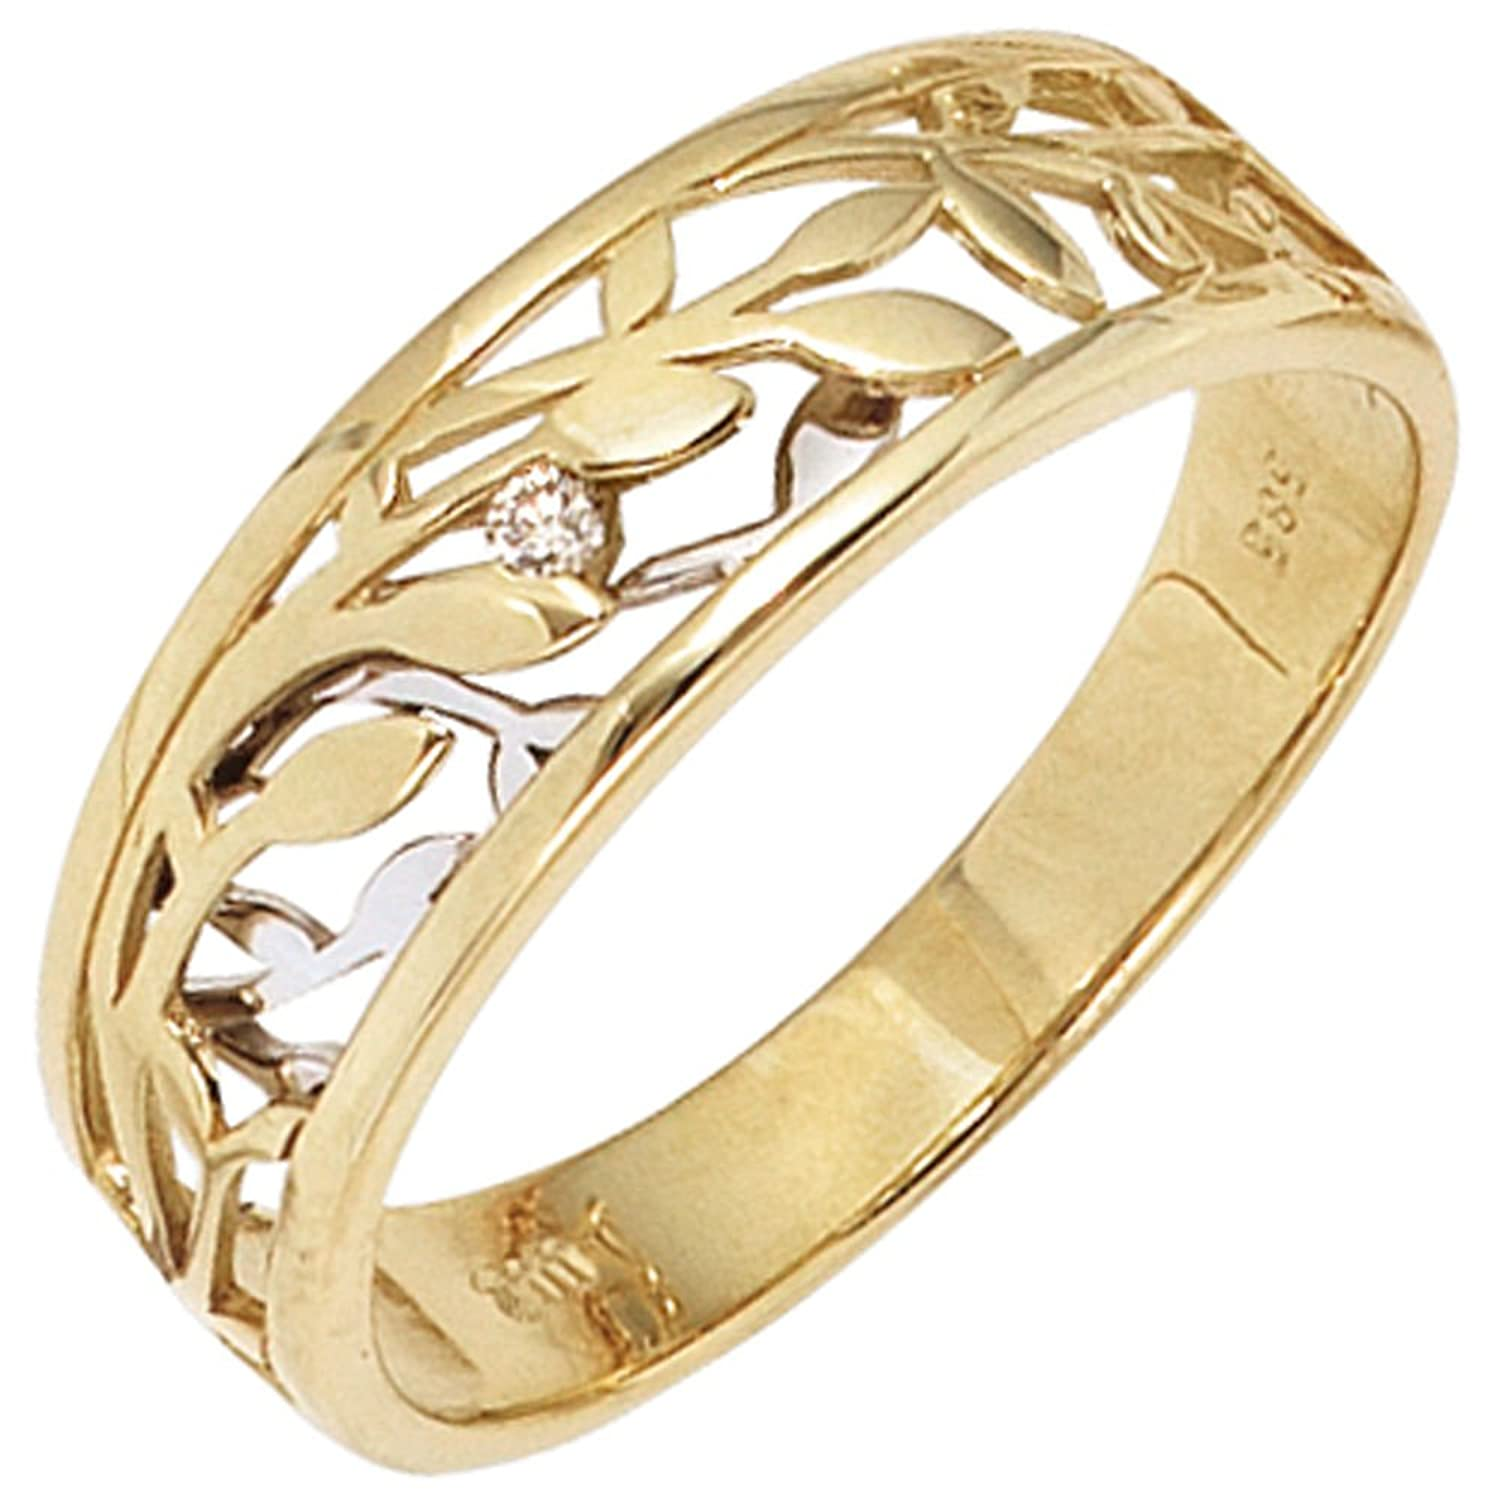 Damen Ring 585 Gold Gelbgold Weißgold bicolor 1 Diamant Brillant 0,02ct. bestellen